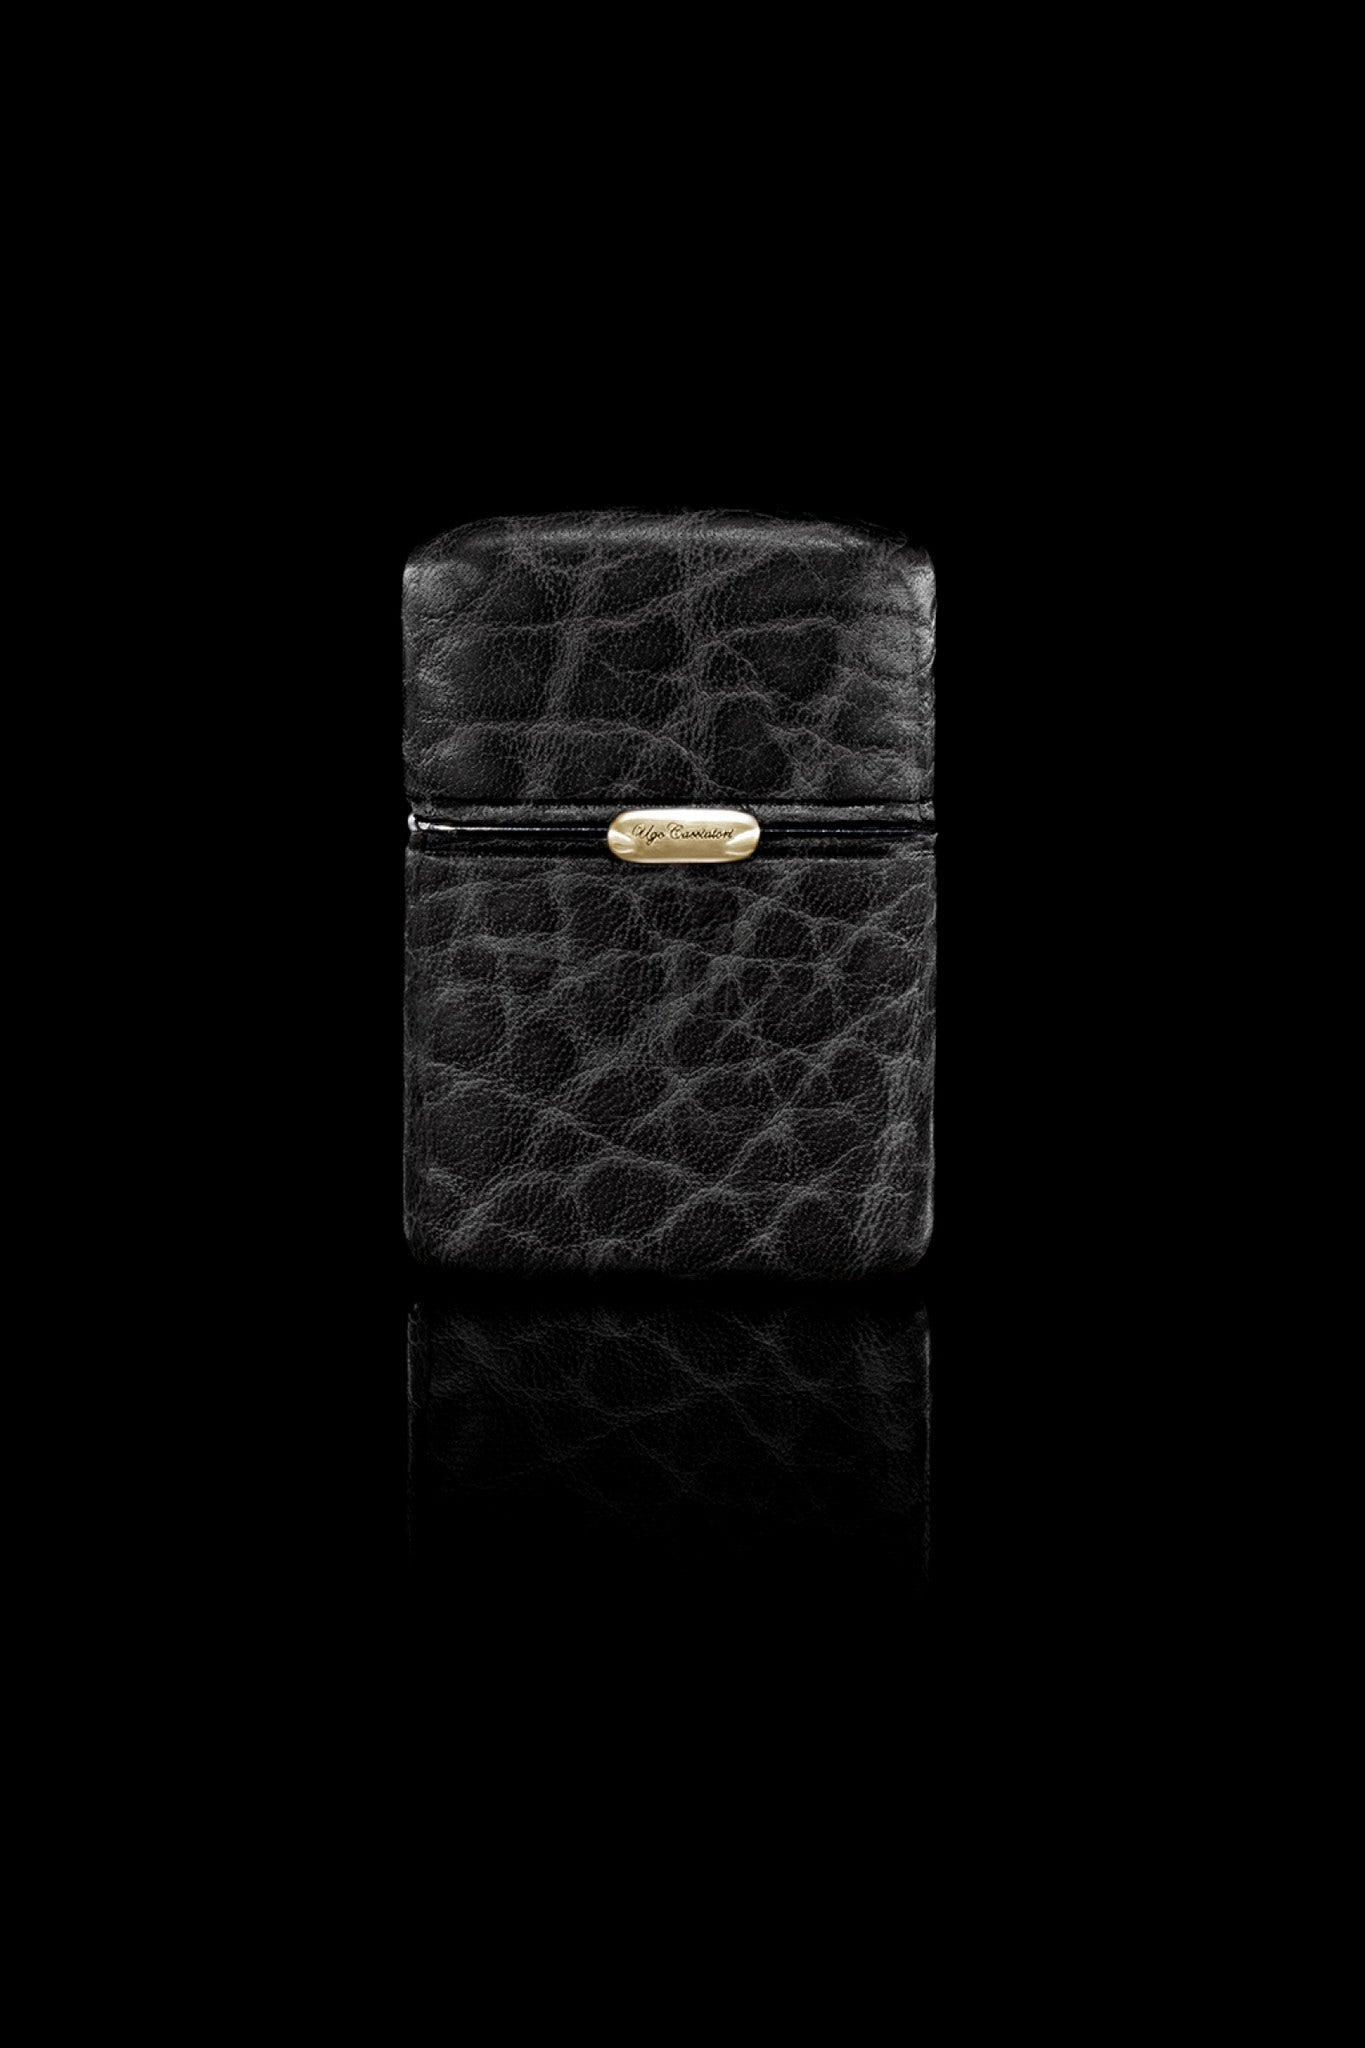 Ugo Cacciatori, Gold, Accessories, 9kt Gold + Sterling Silver +Leather, Lighter, Black Wrinkled Leather, Brown Wrinkled Leather